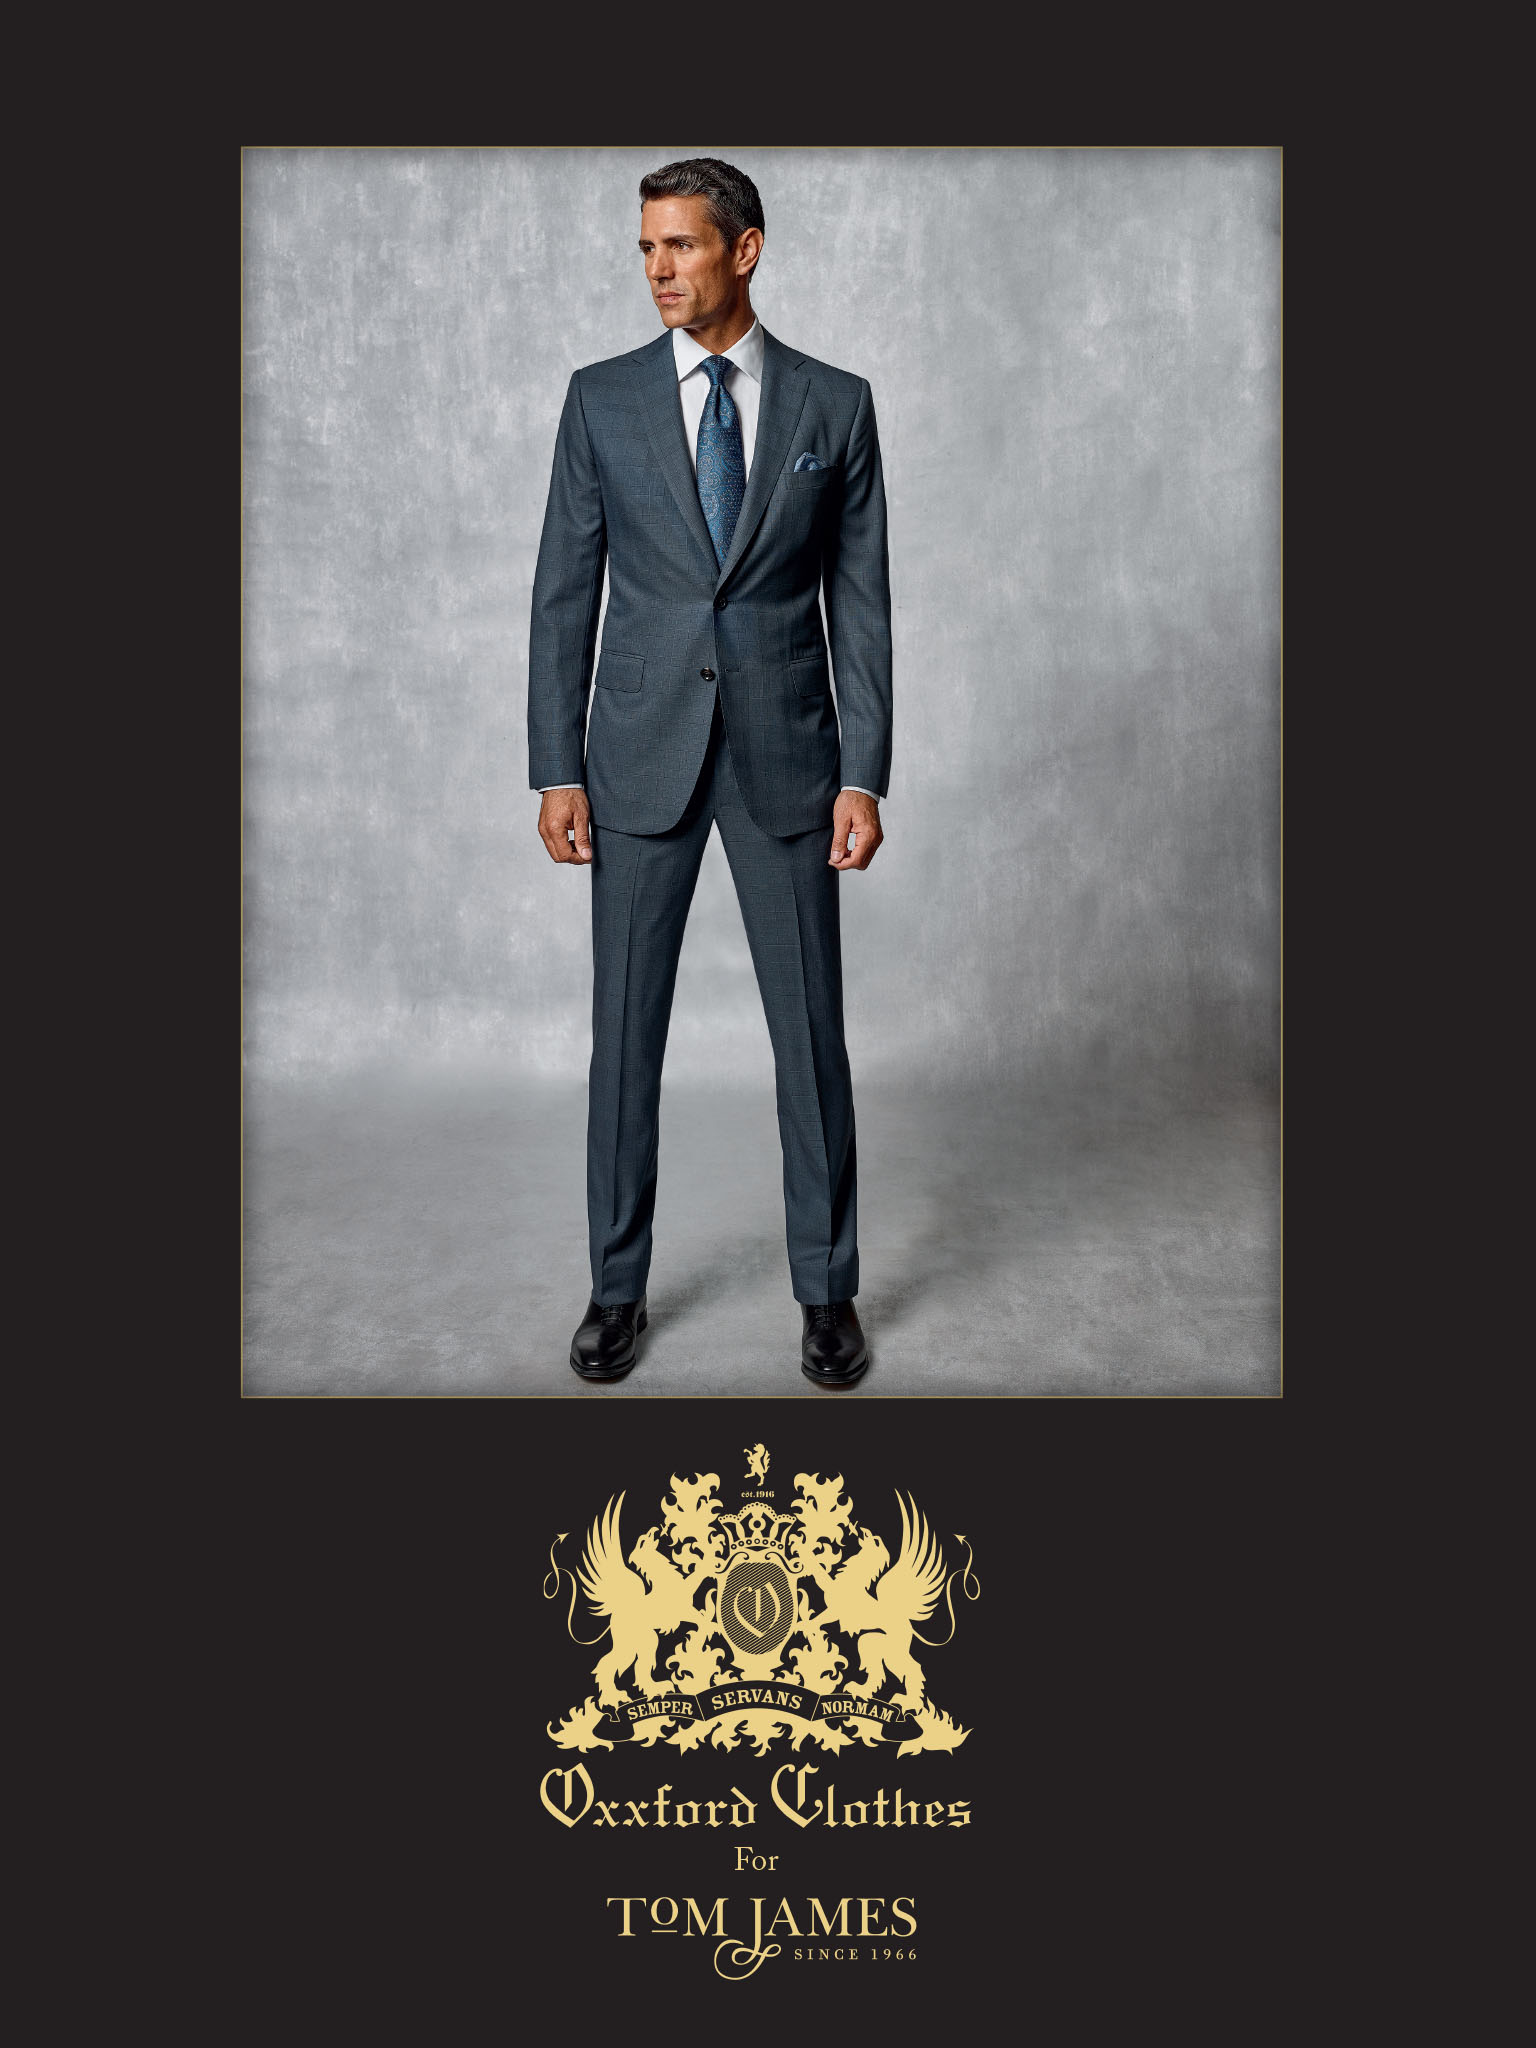 Oxxford Clothes Suits Bespoke